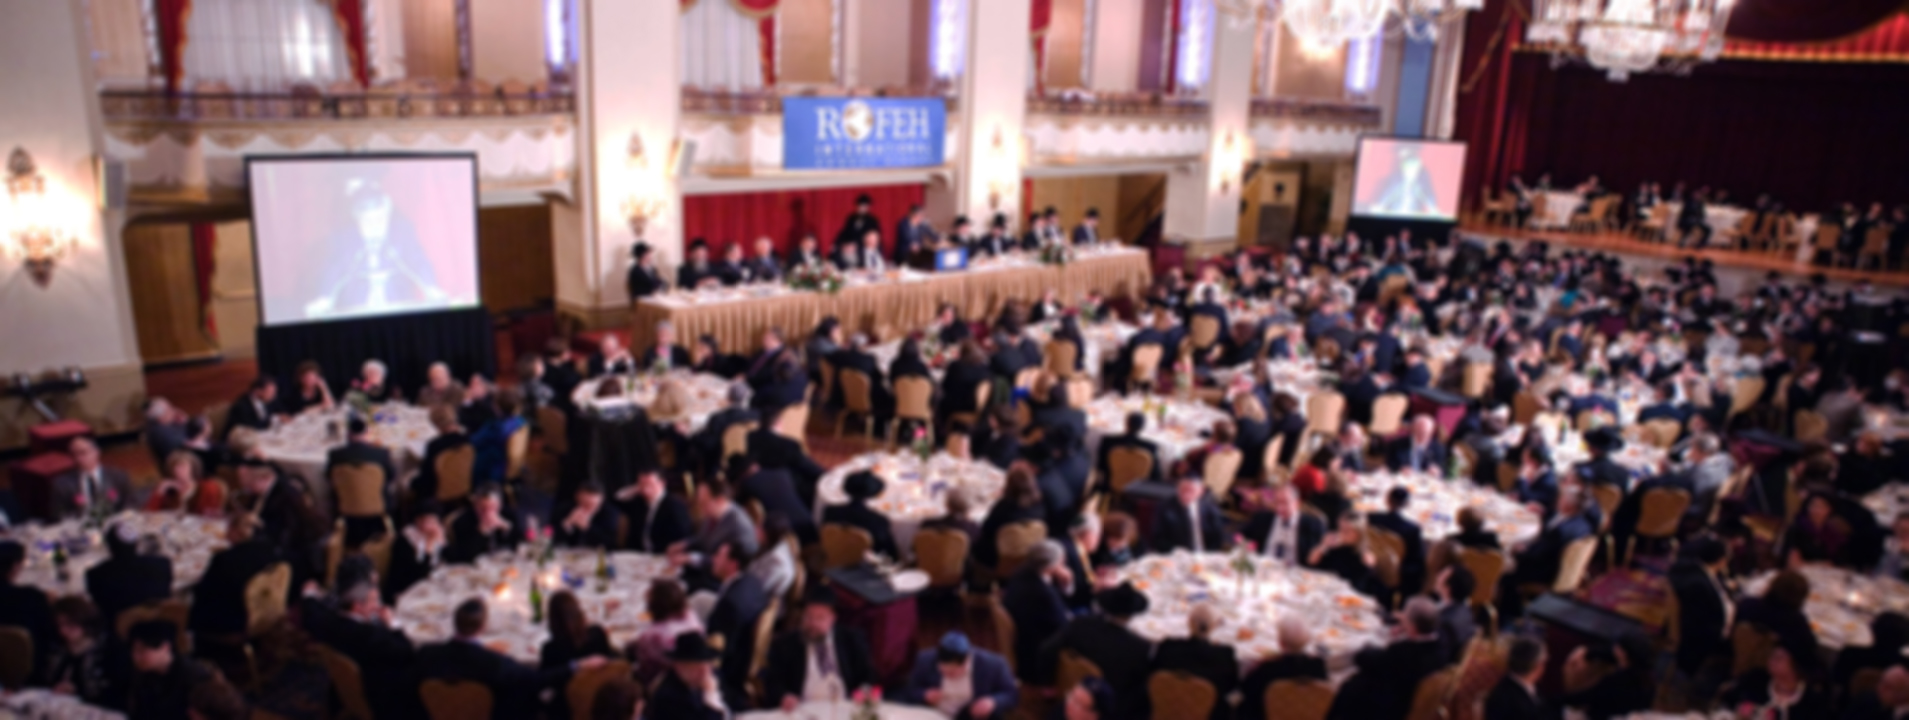 ROFEH Int'l Annual Dinner